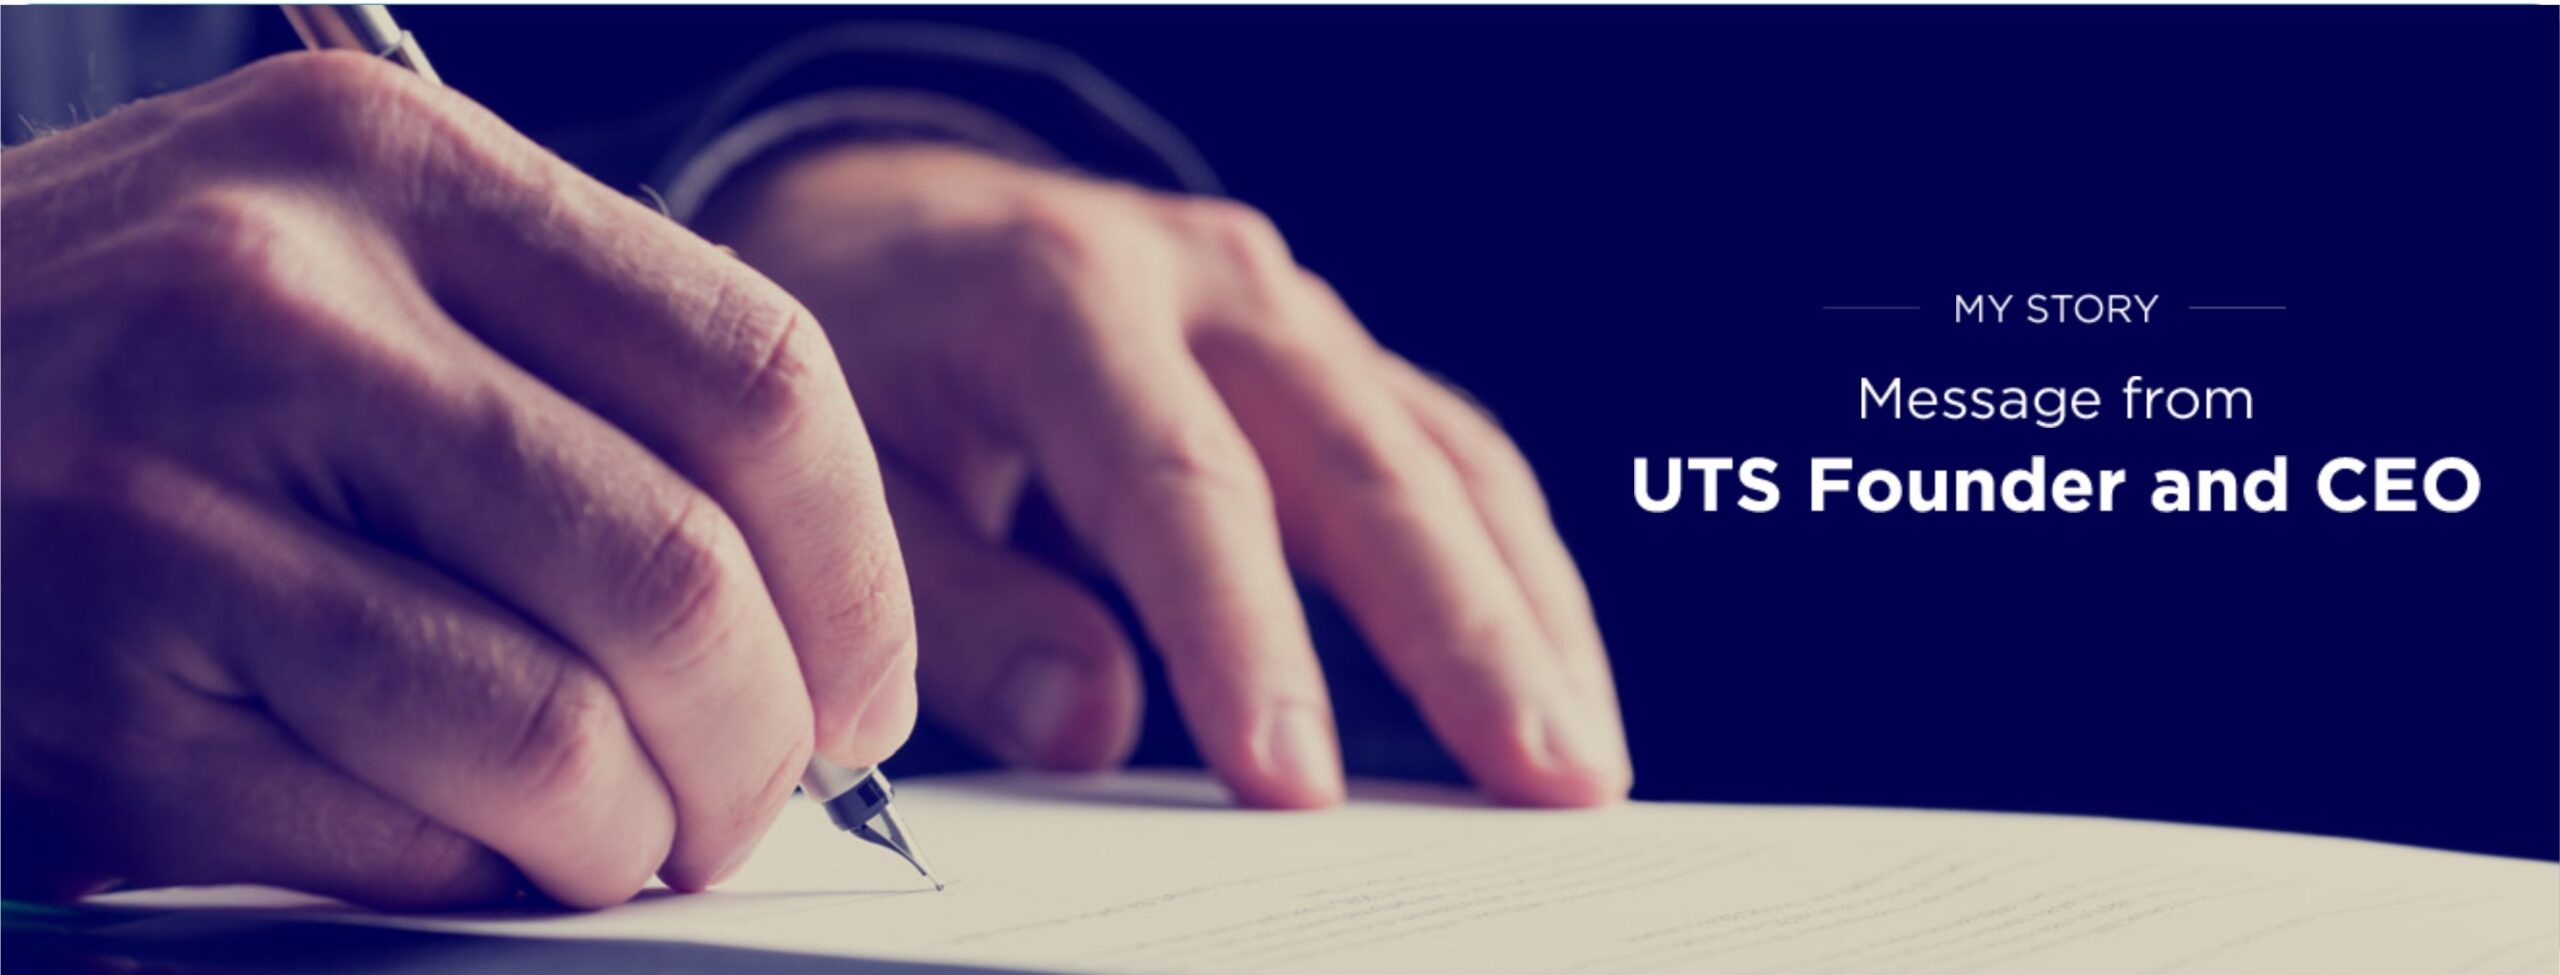 UTS Founder